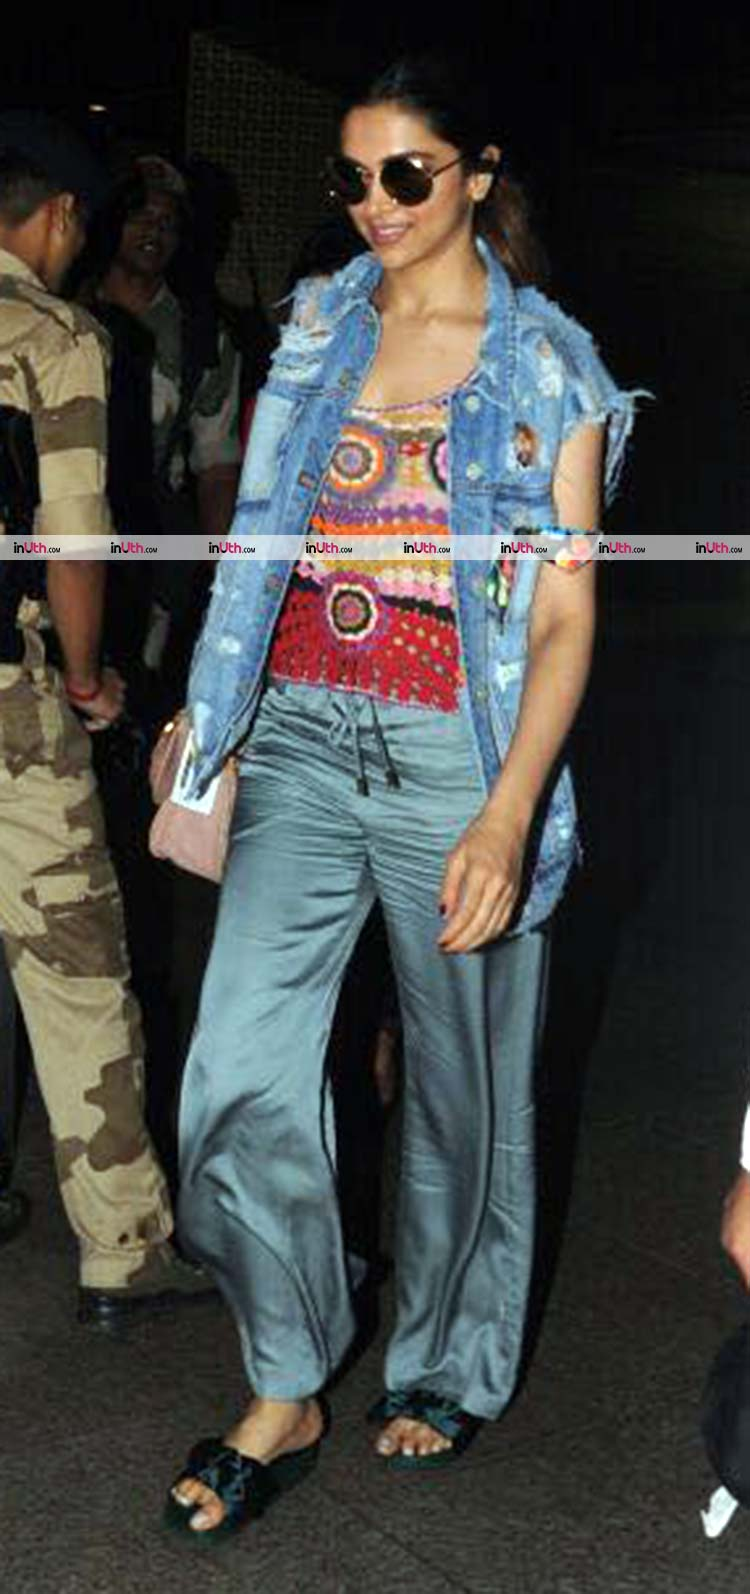 Deepika Padukone goes quirky with her airport look